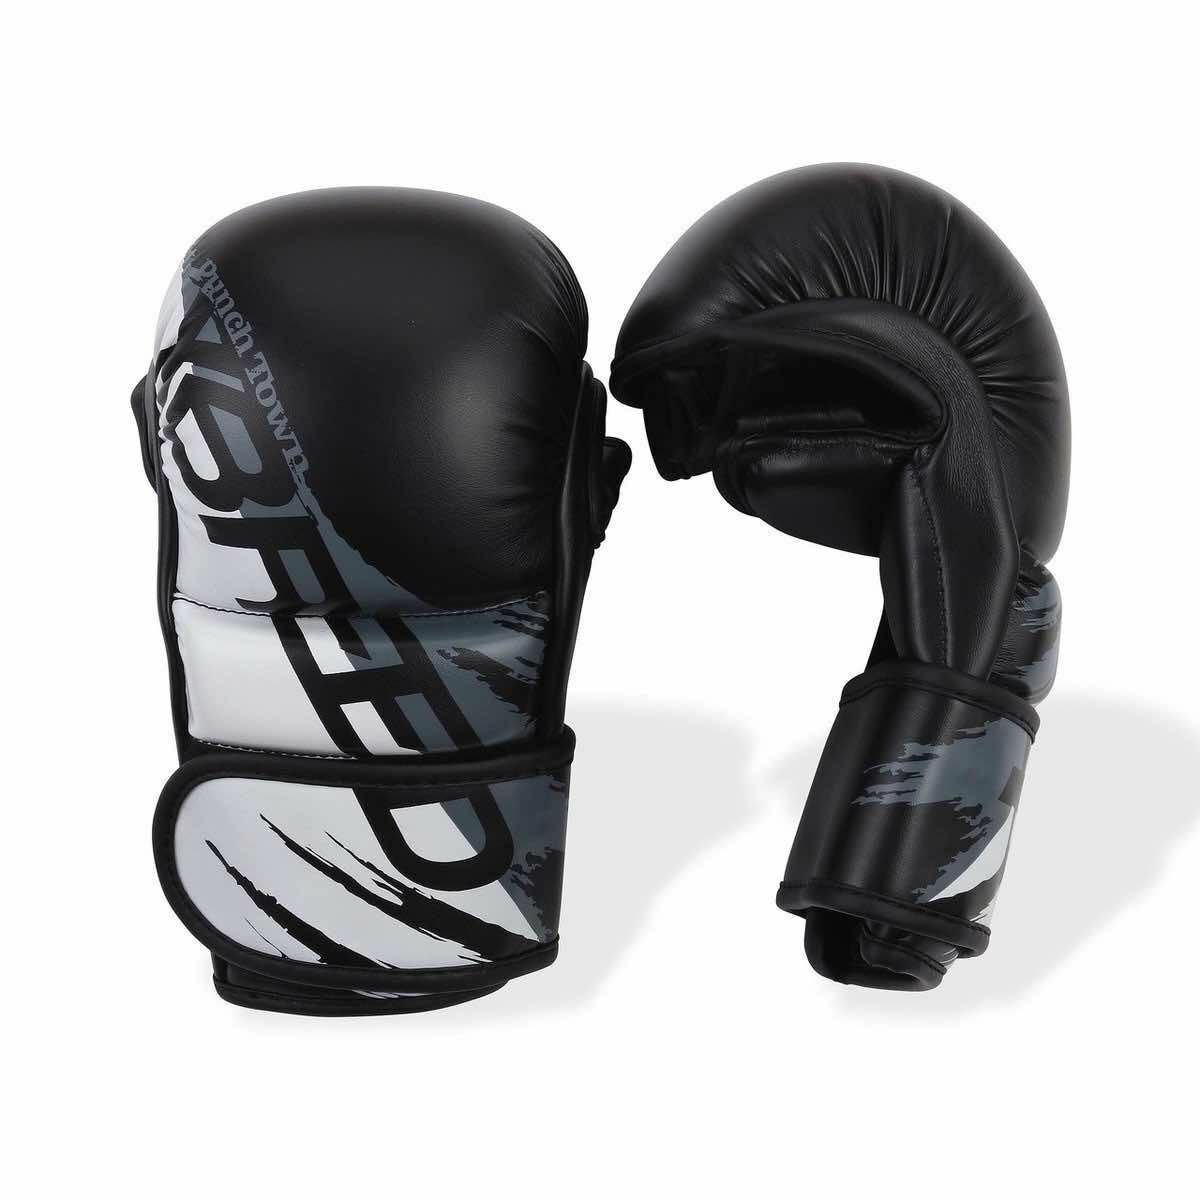 Punchtown xbreed  MMA Sparring G s 199  Workout Amateur Mixed Martial  best prices and freshest styles